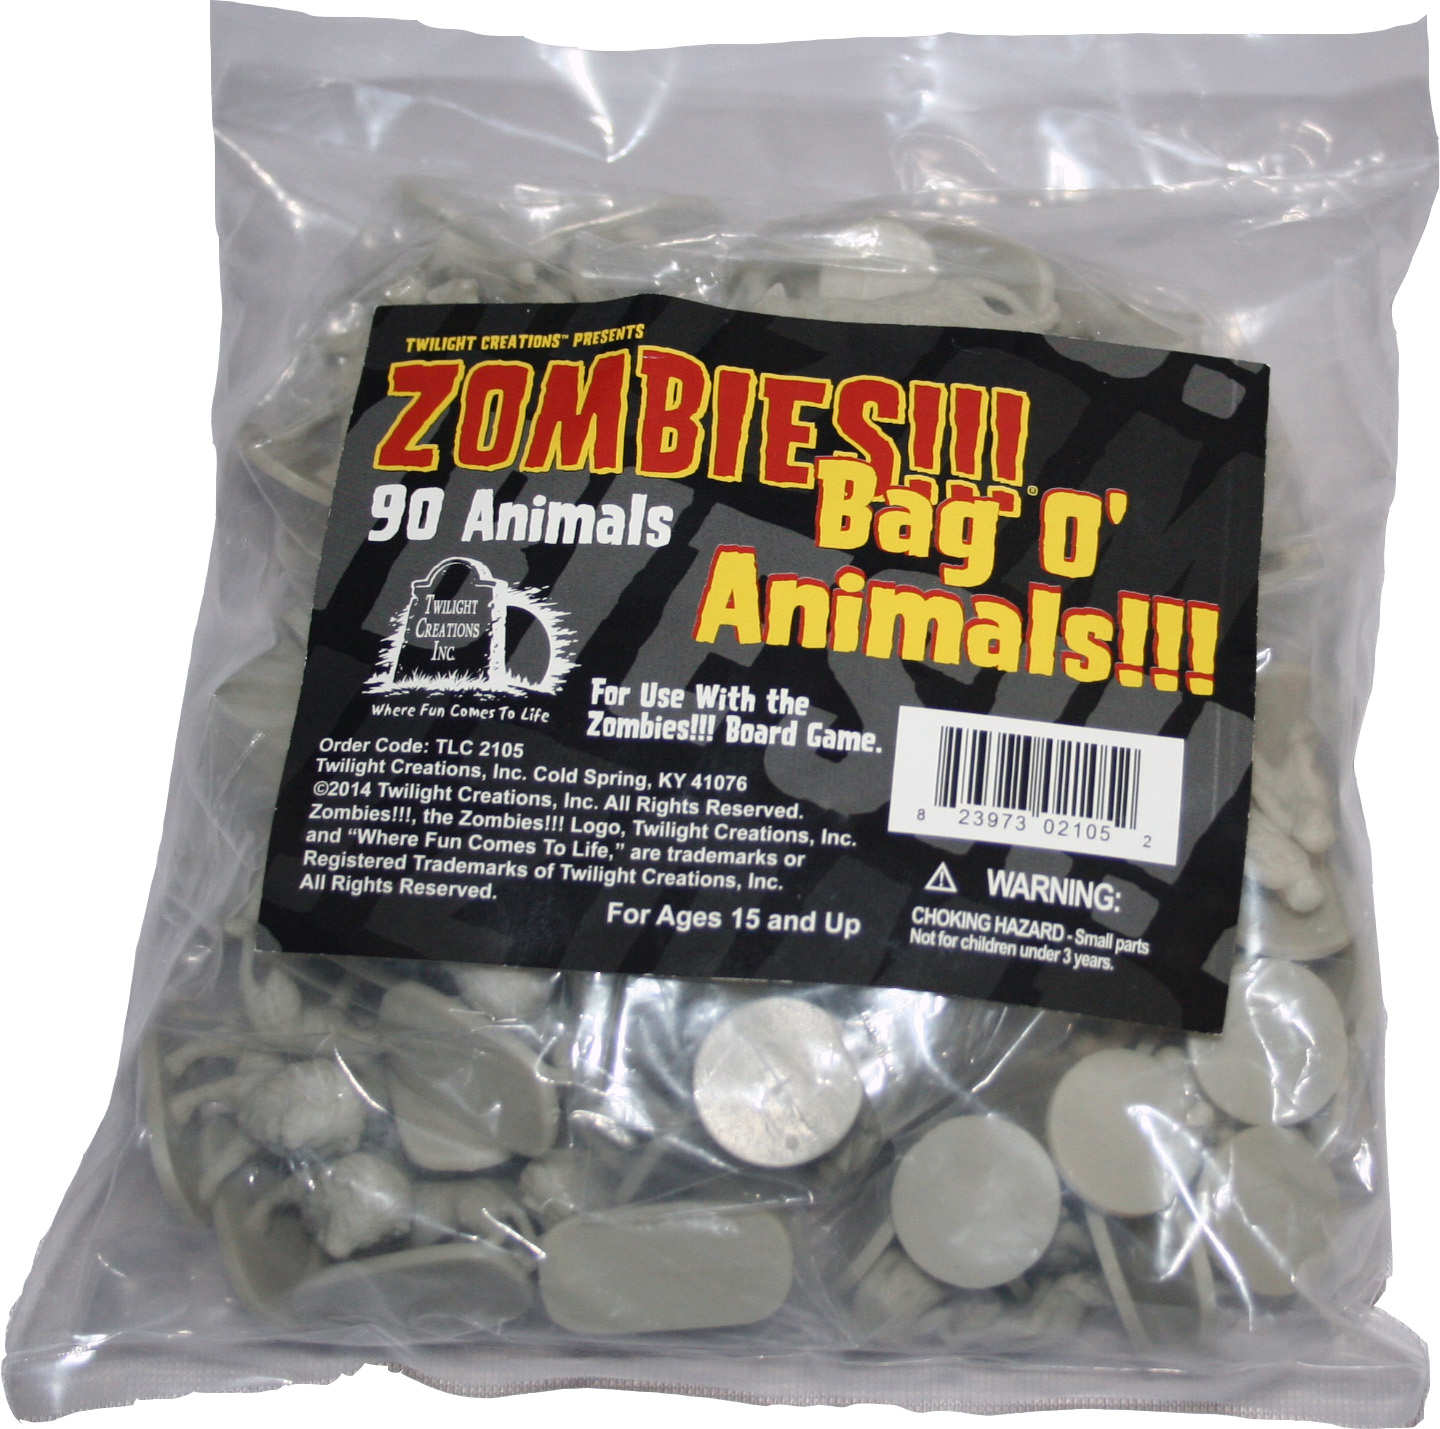 Zombies!!!: Bag O Zombie - Animals Box Front